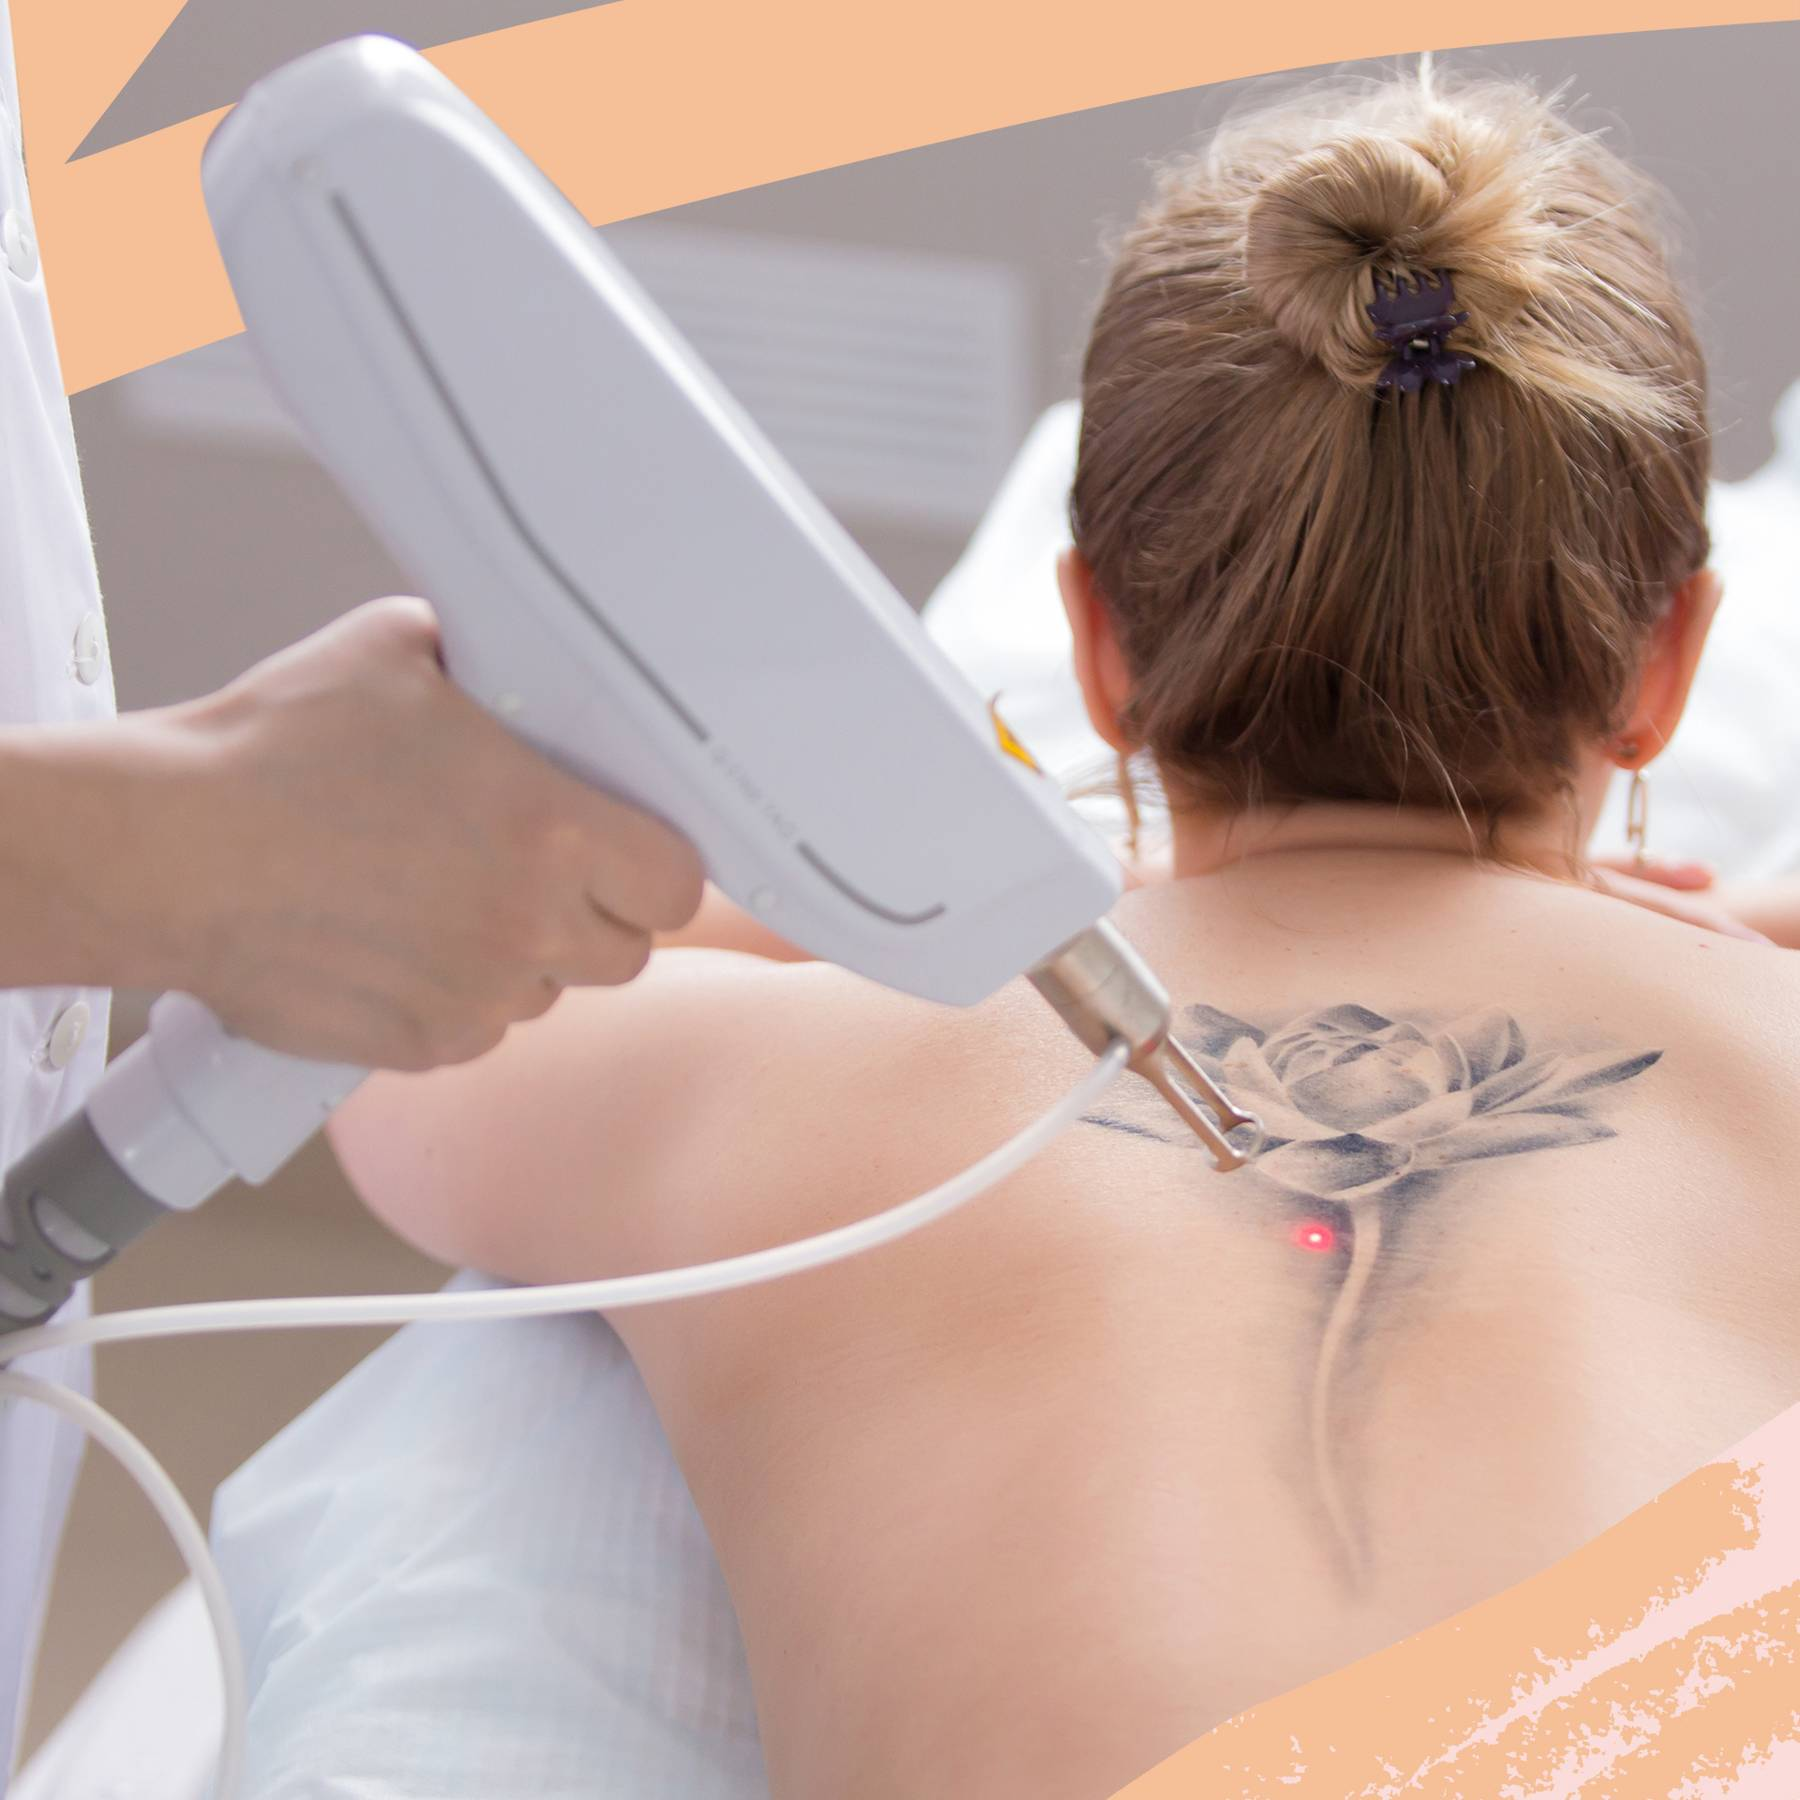 Tattoo Removal Options For How To Remove A Tattoo Glamour Uk